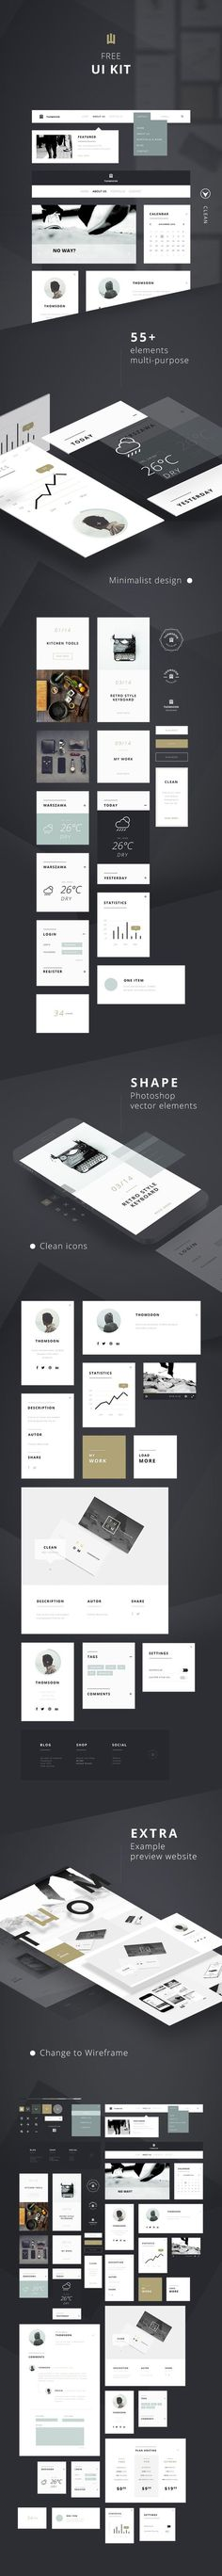 55+ Elements FREE UI KIT | Clean white [DOWNLOAD] #free psd #ui kit #ux